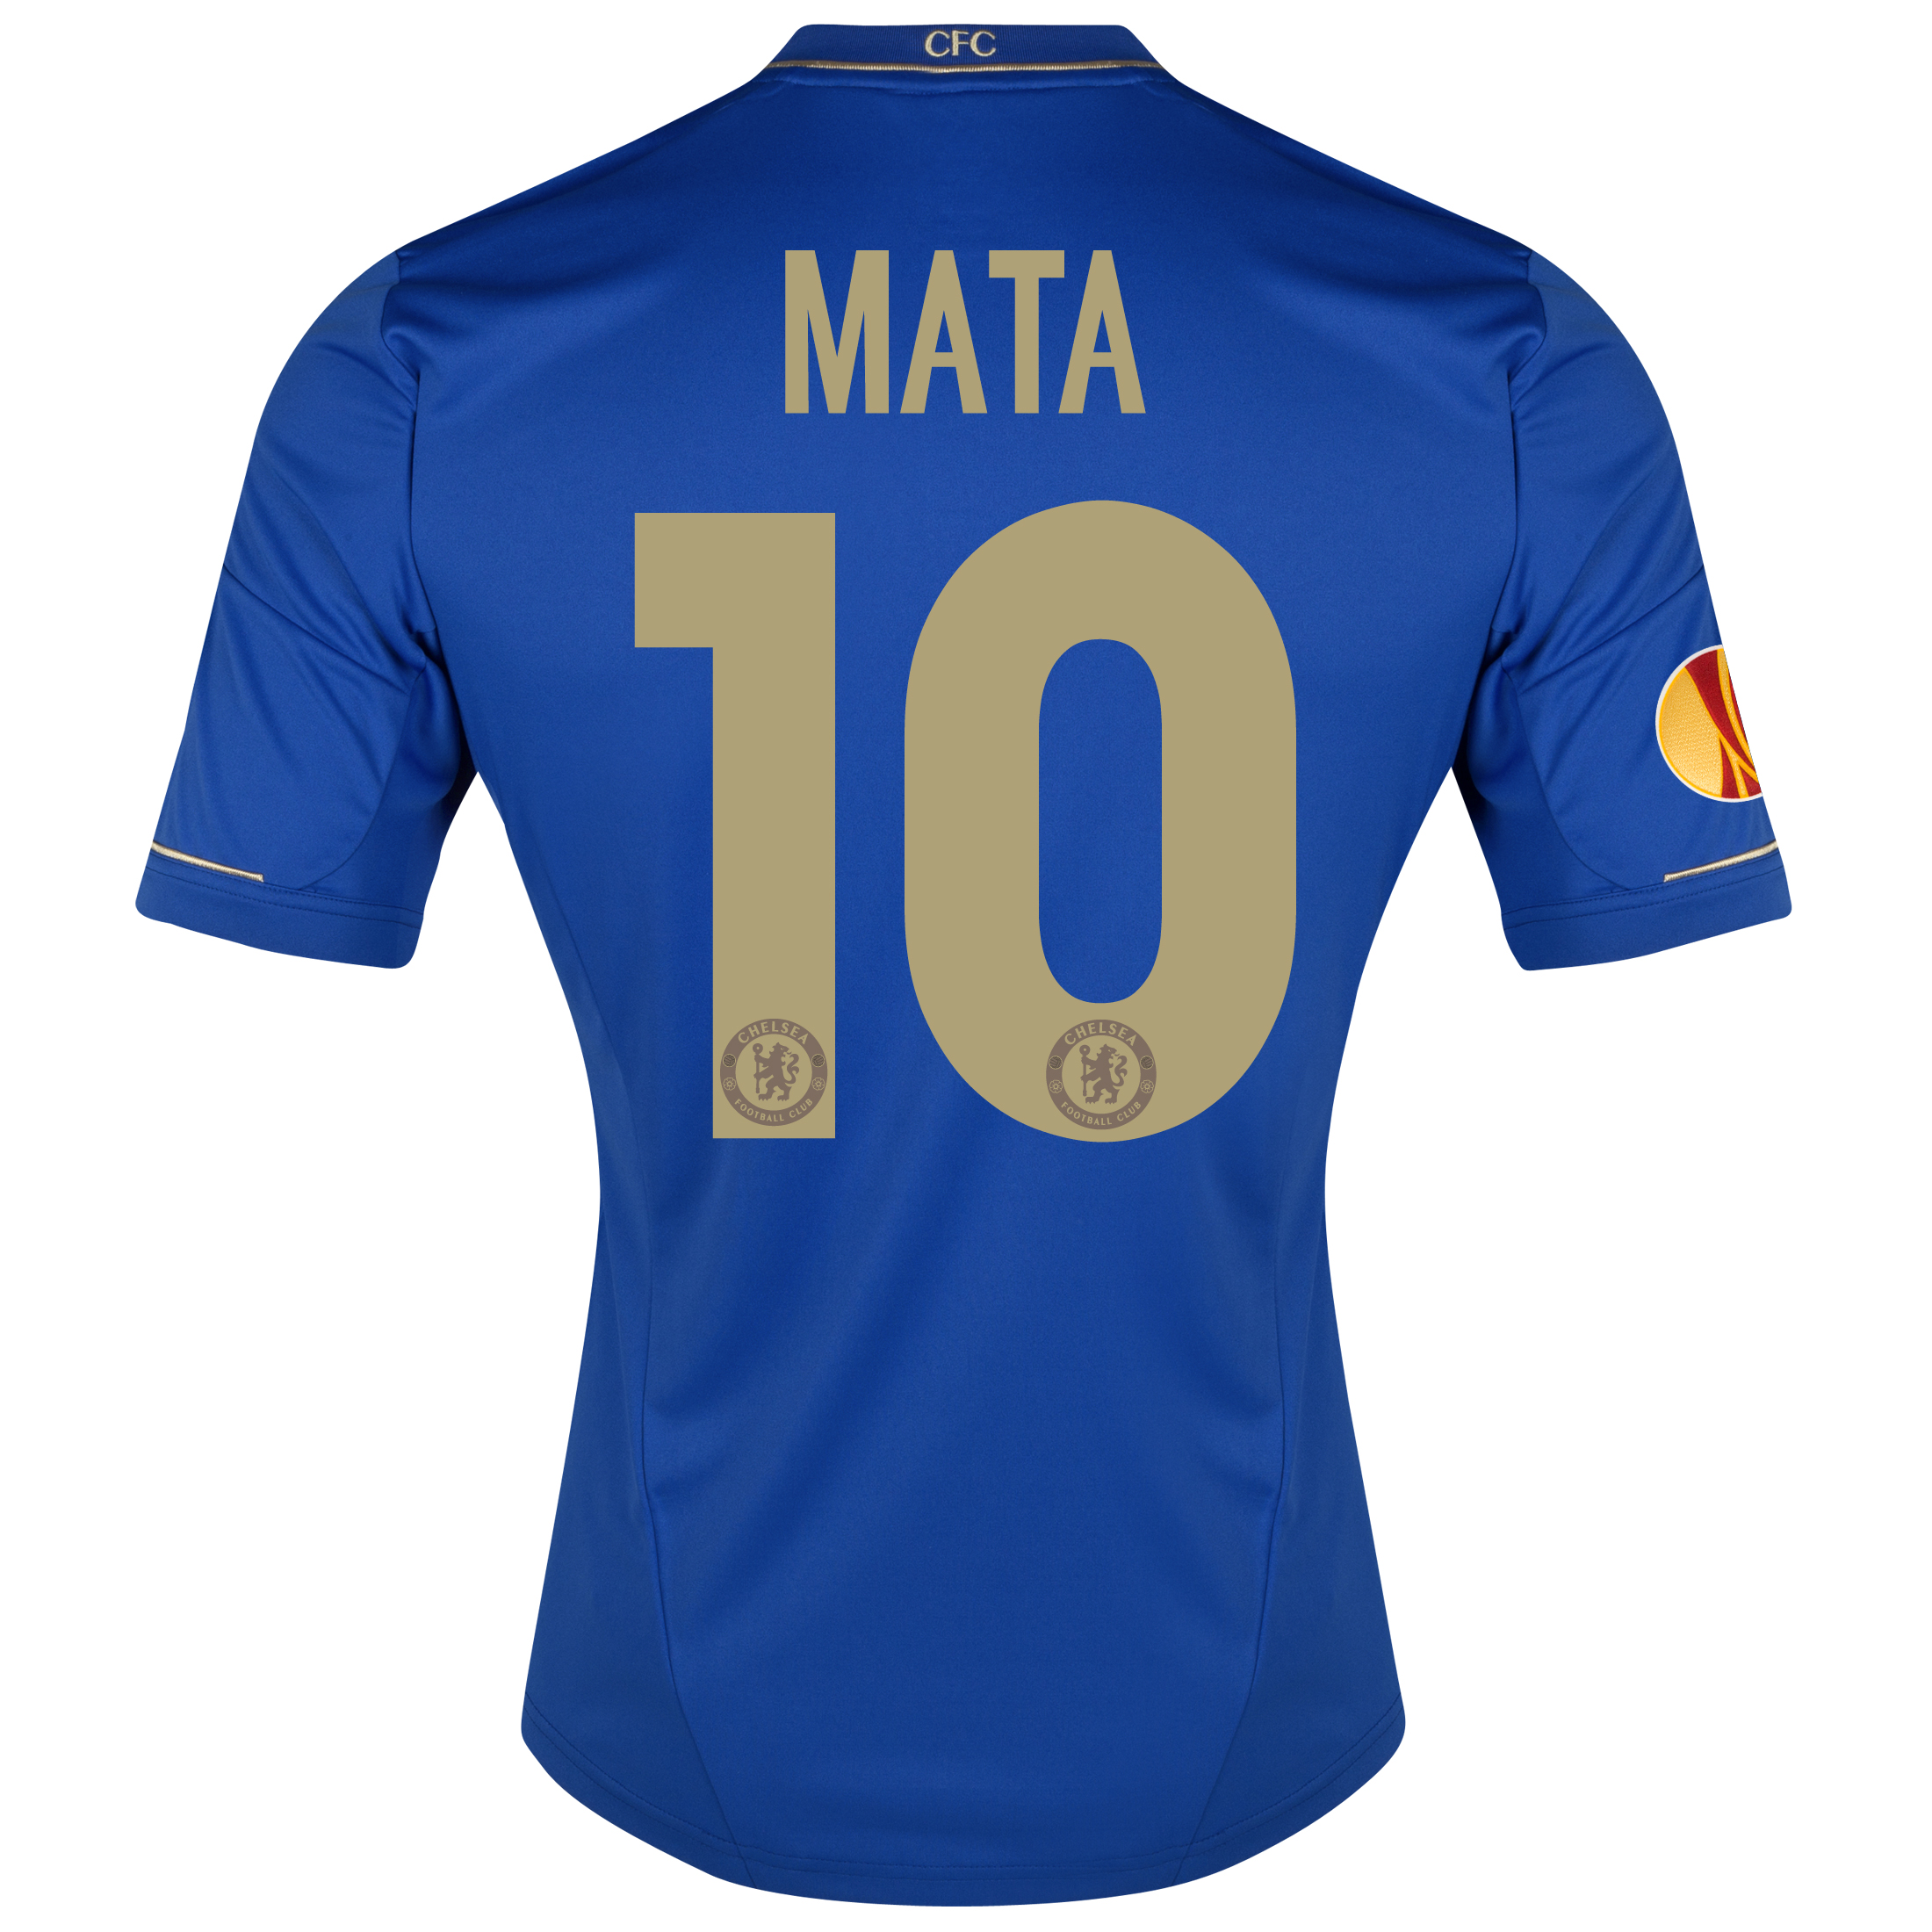 Chelsea UEFA Europa League Home Shirt 2012/13 with Mata 10 printing Including Europa Badge